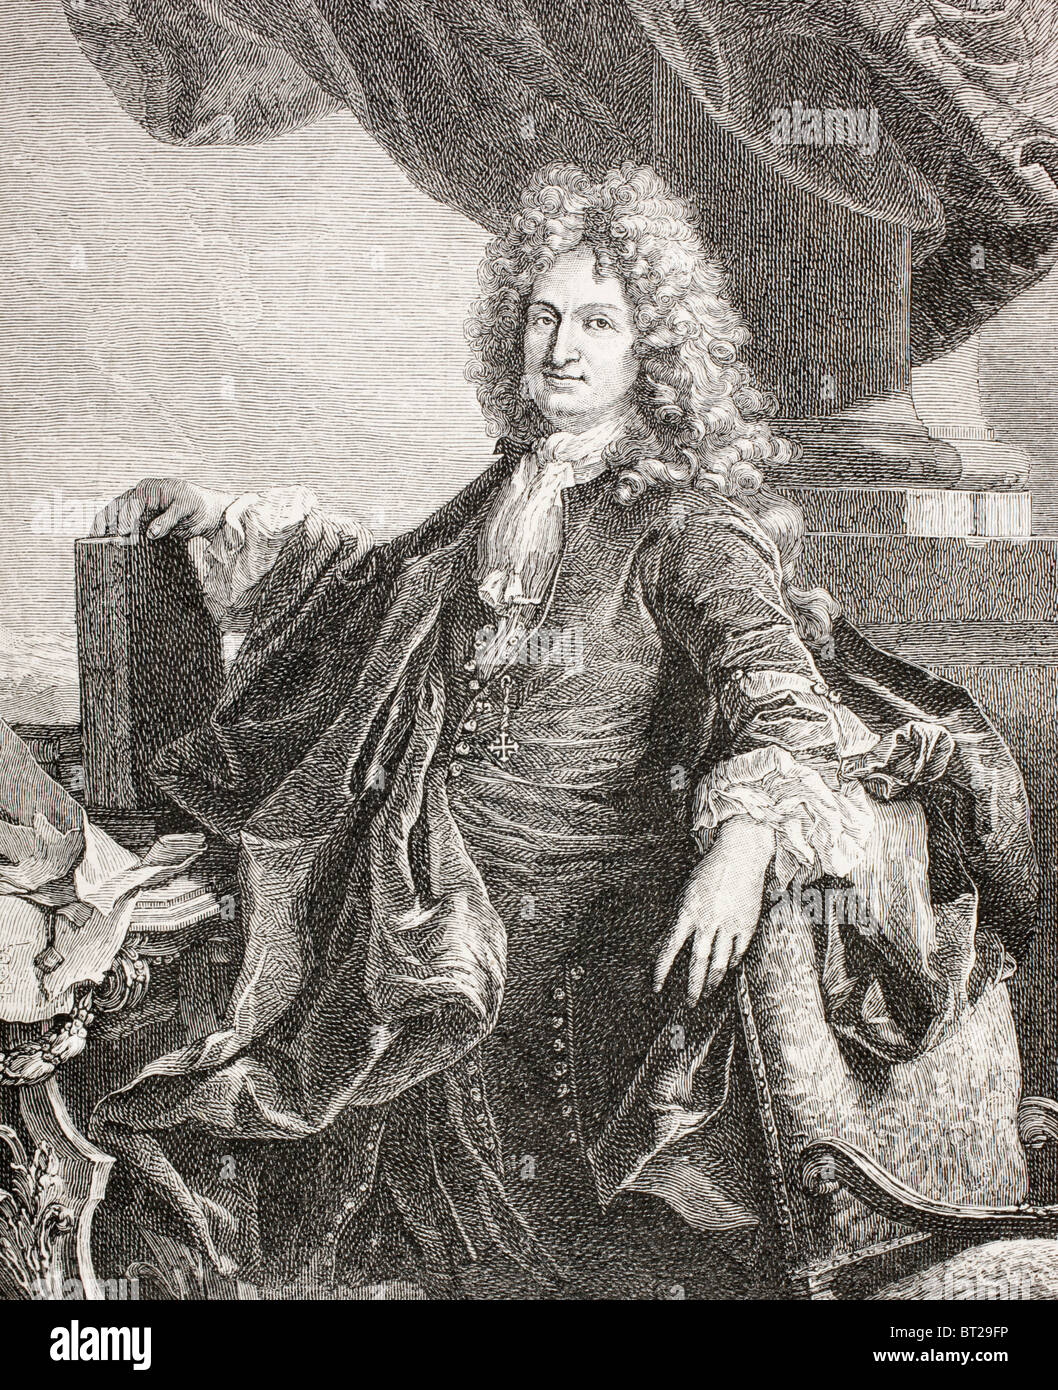 Charles-René d'Hozier, 1640 – 1732. French historical commentator. Stock Photo